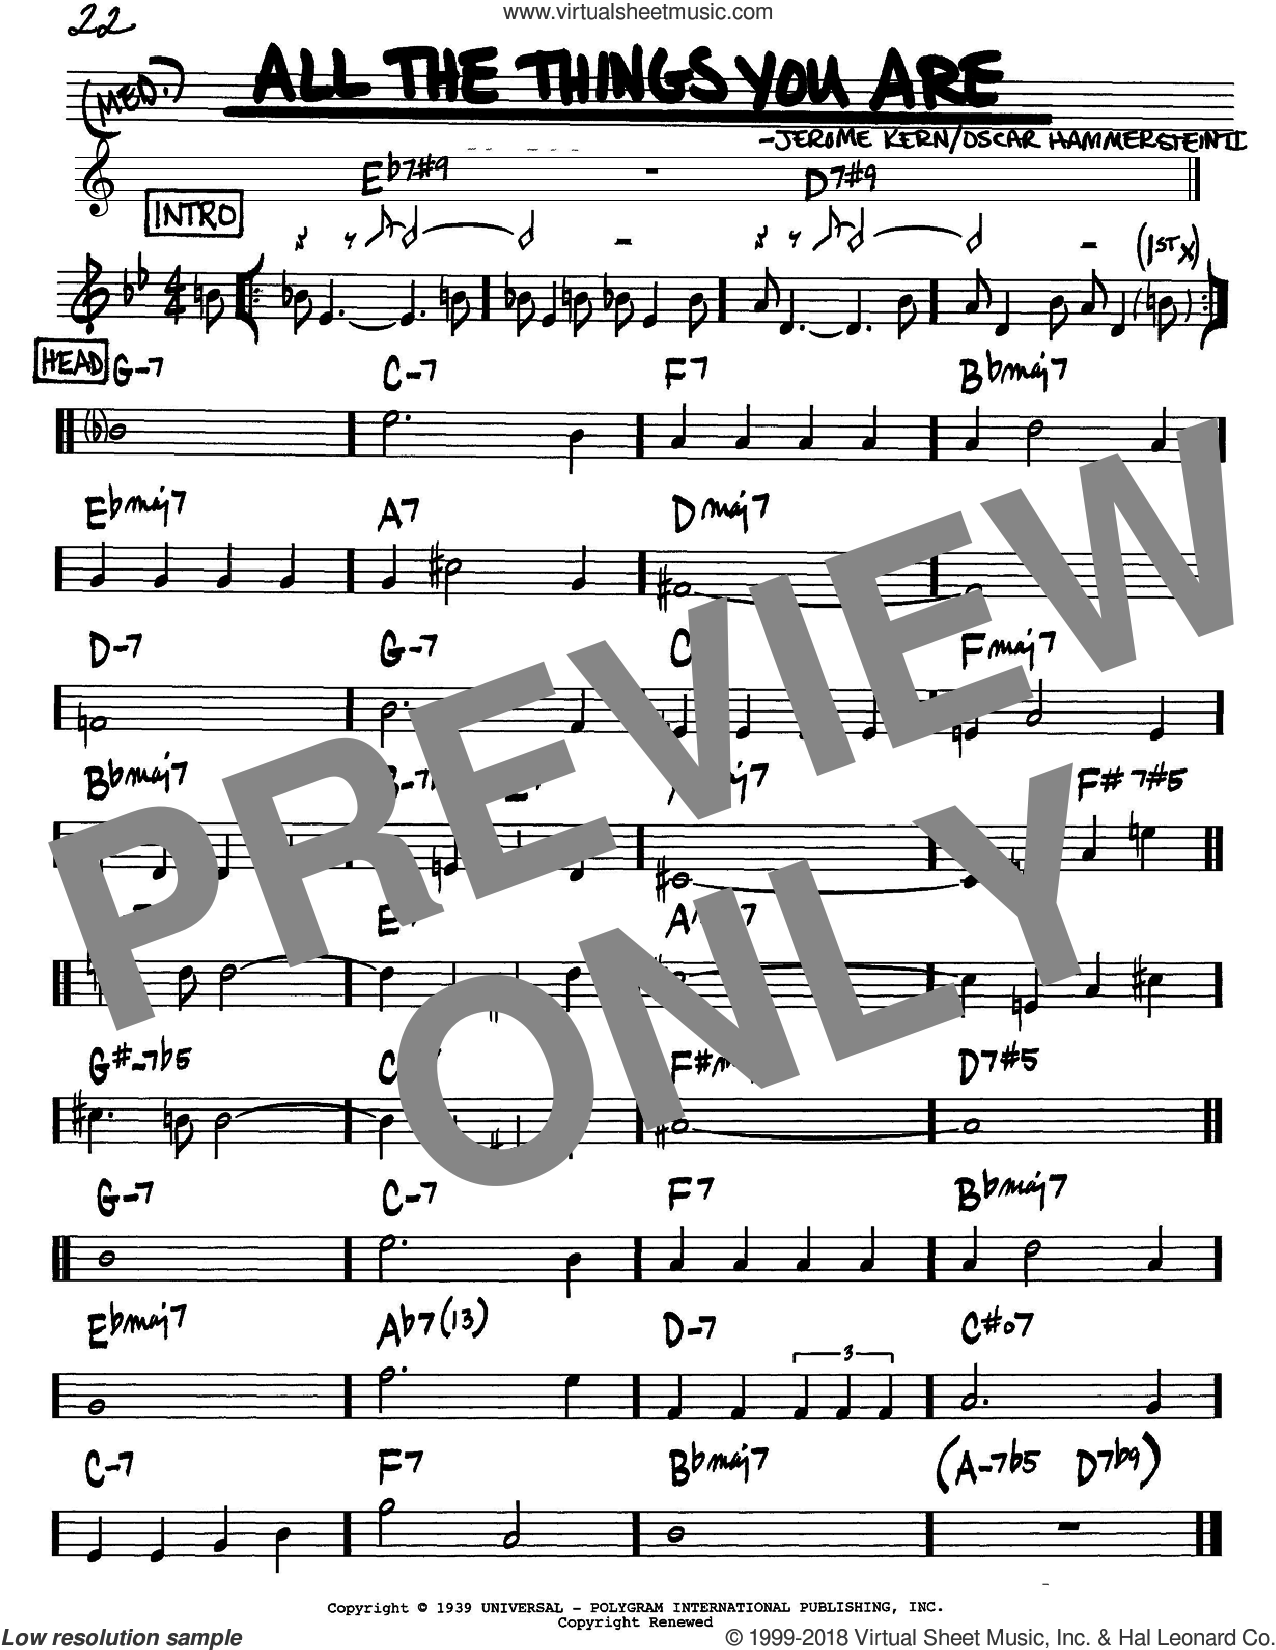 All The Things You Are sheet music for voice and other instruments (Bb) by Jerome Kern and Oscar II Hammerstein. Score Image Preview.